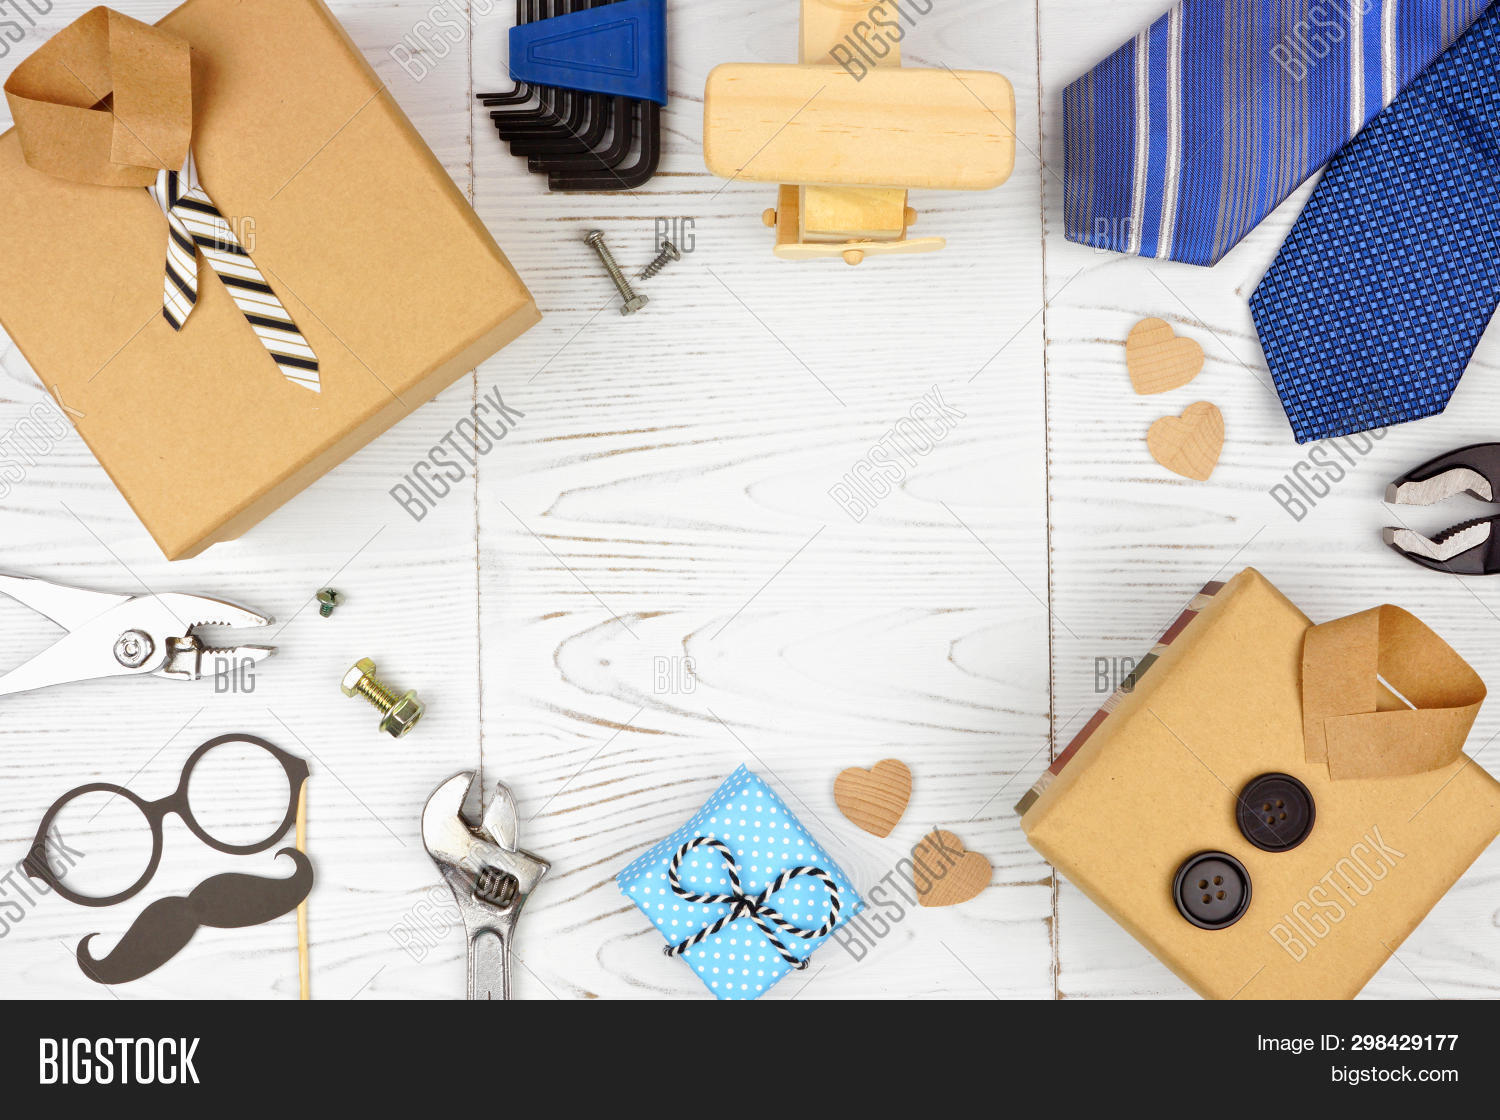 background,blue,border,box,bright,brown,card,celebration,concept,copy,culture,dad,day,decor,decoration,fashion,fathers,flat,frame,gift,glasses,greeting,group,holiday,june,lay,layout,love,many,masculine,moustache,mustache,necktie,objects,overhead,paper,present,shirt,space,style,tie,tools,top,traditional,view,vintage,white,woden,wood,wooden